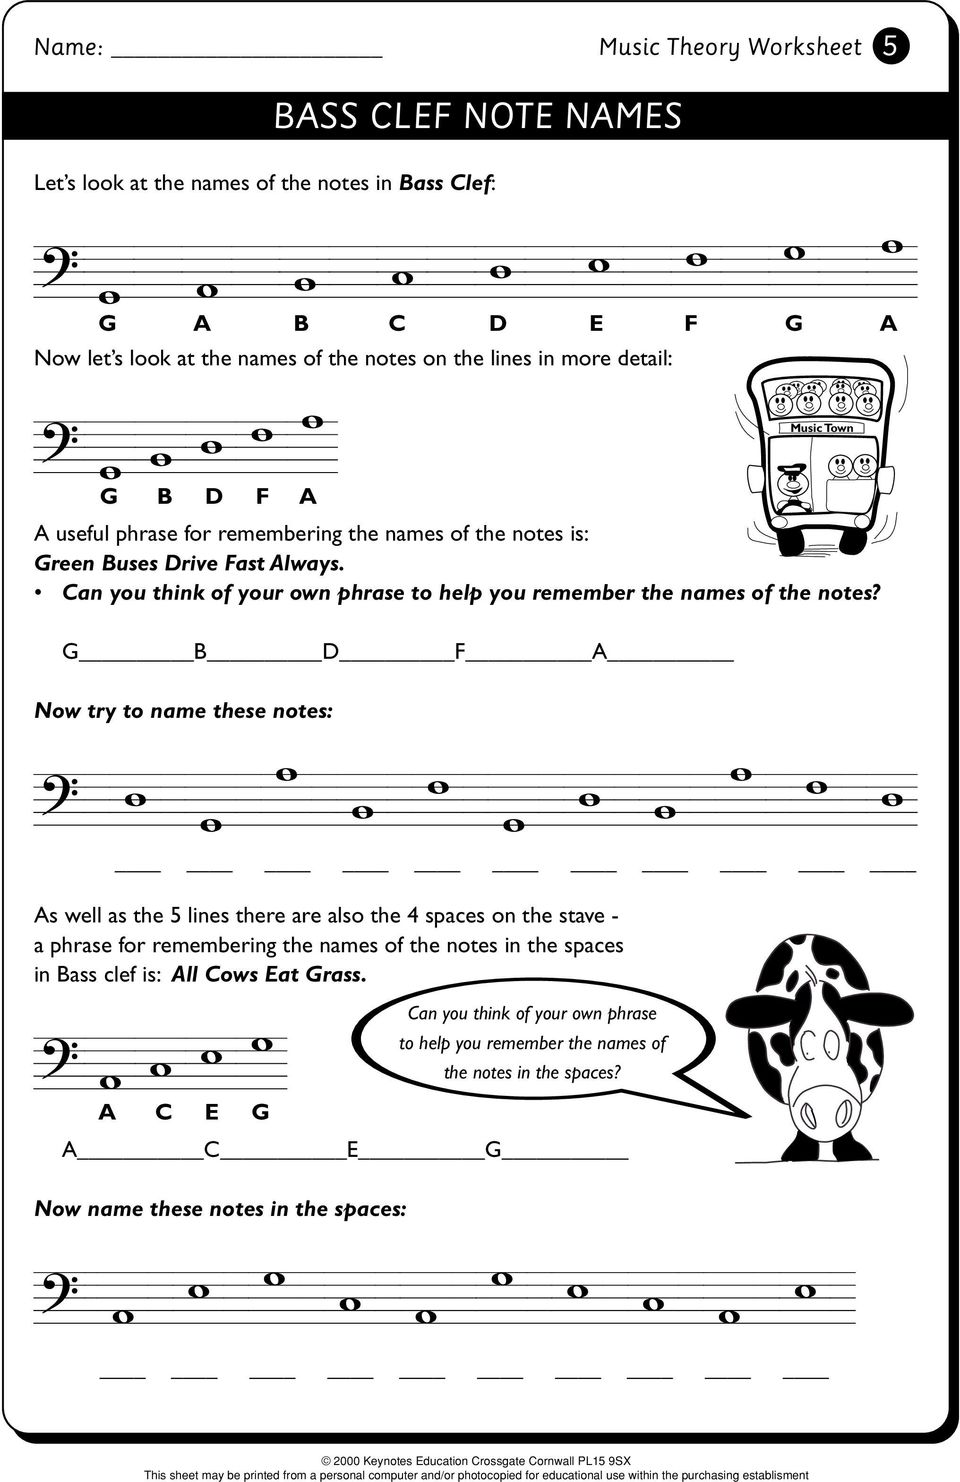 Music Theory Worksheet. Music Theory 1 - PDF